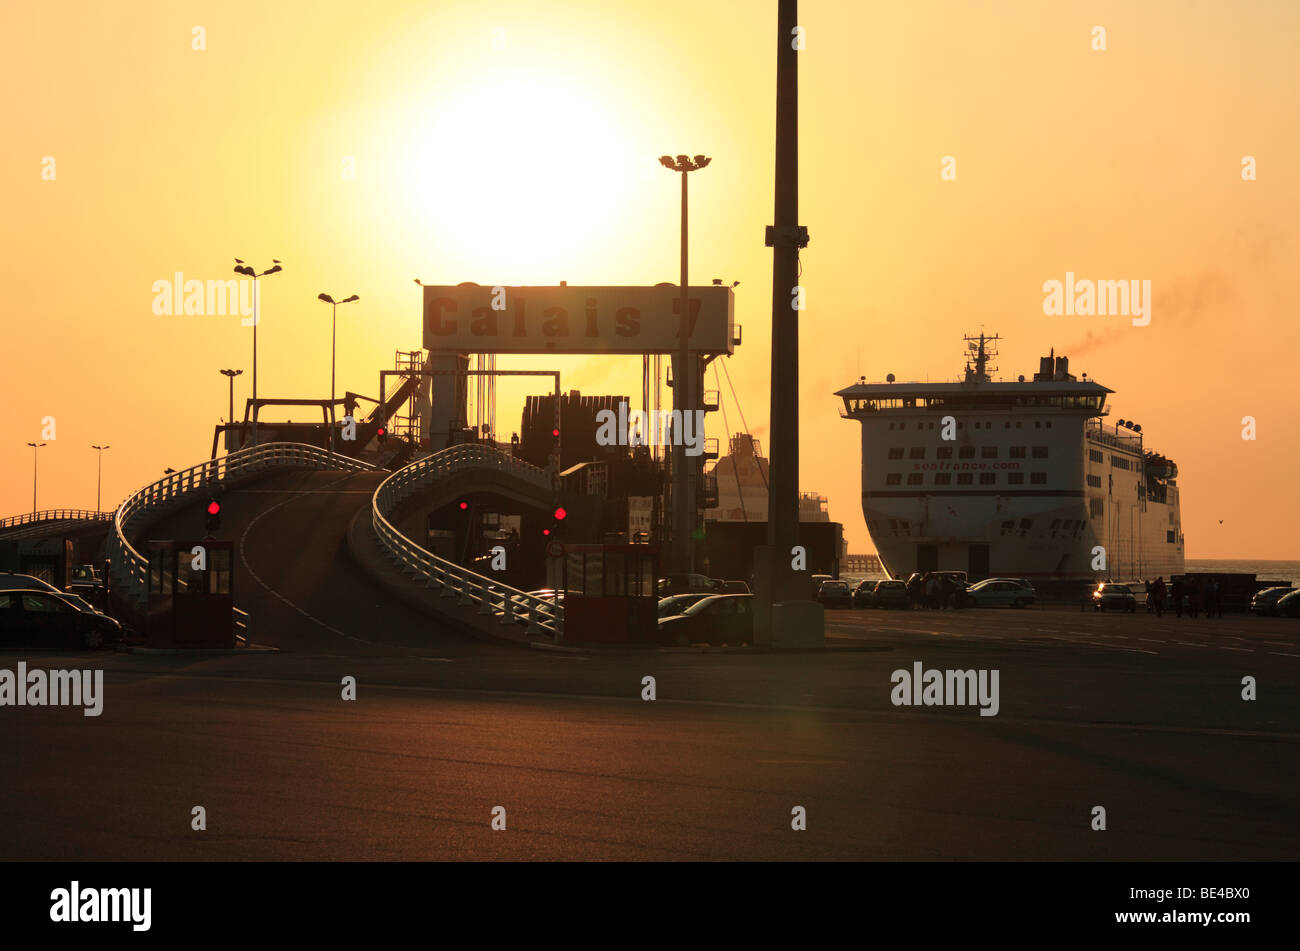 Cross Channel Ferry entering Calais. - Stock Image